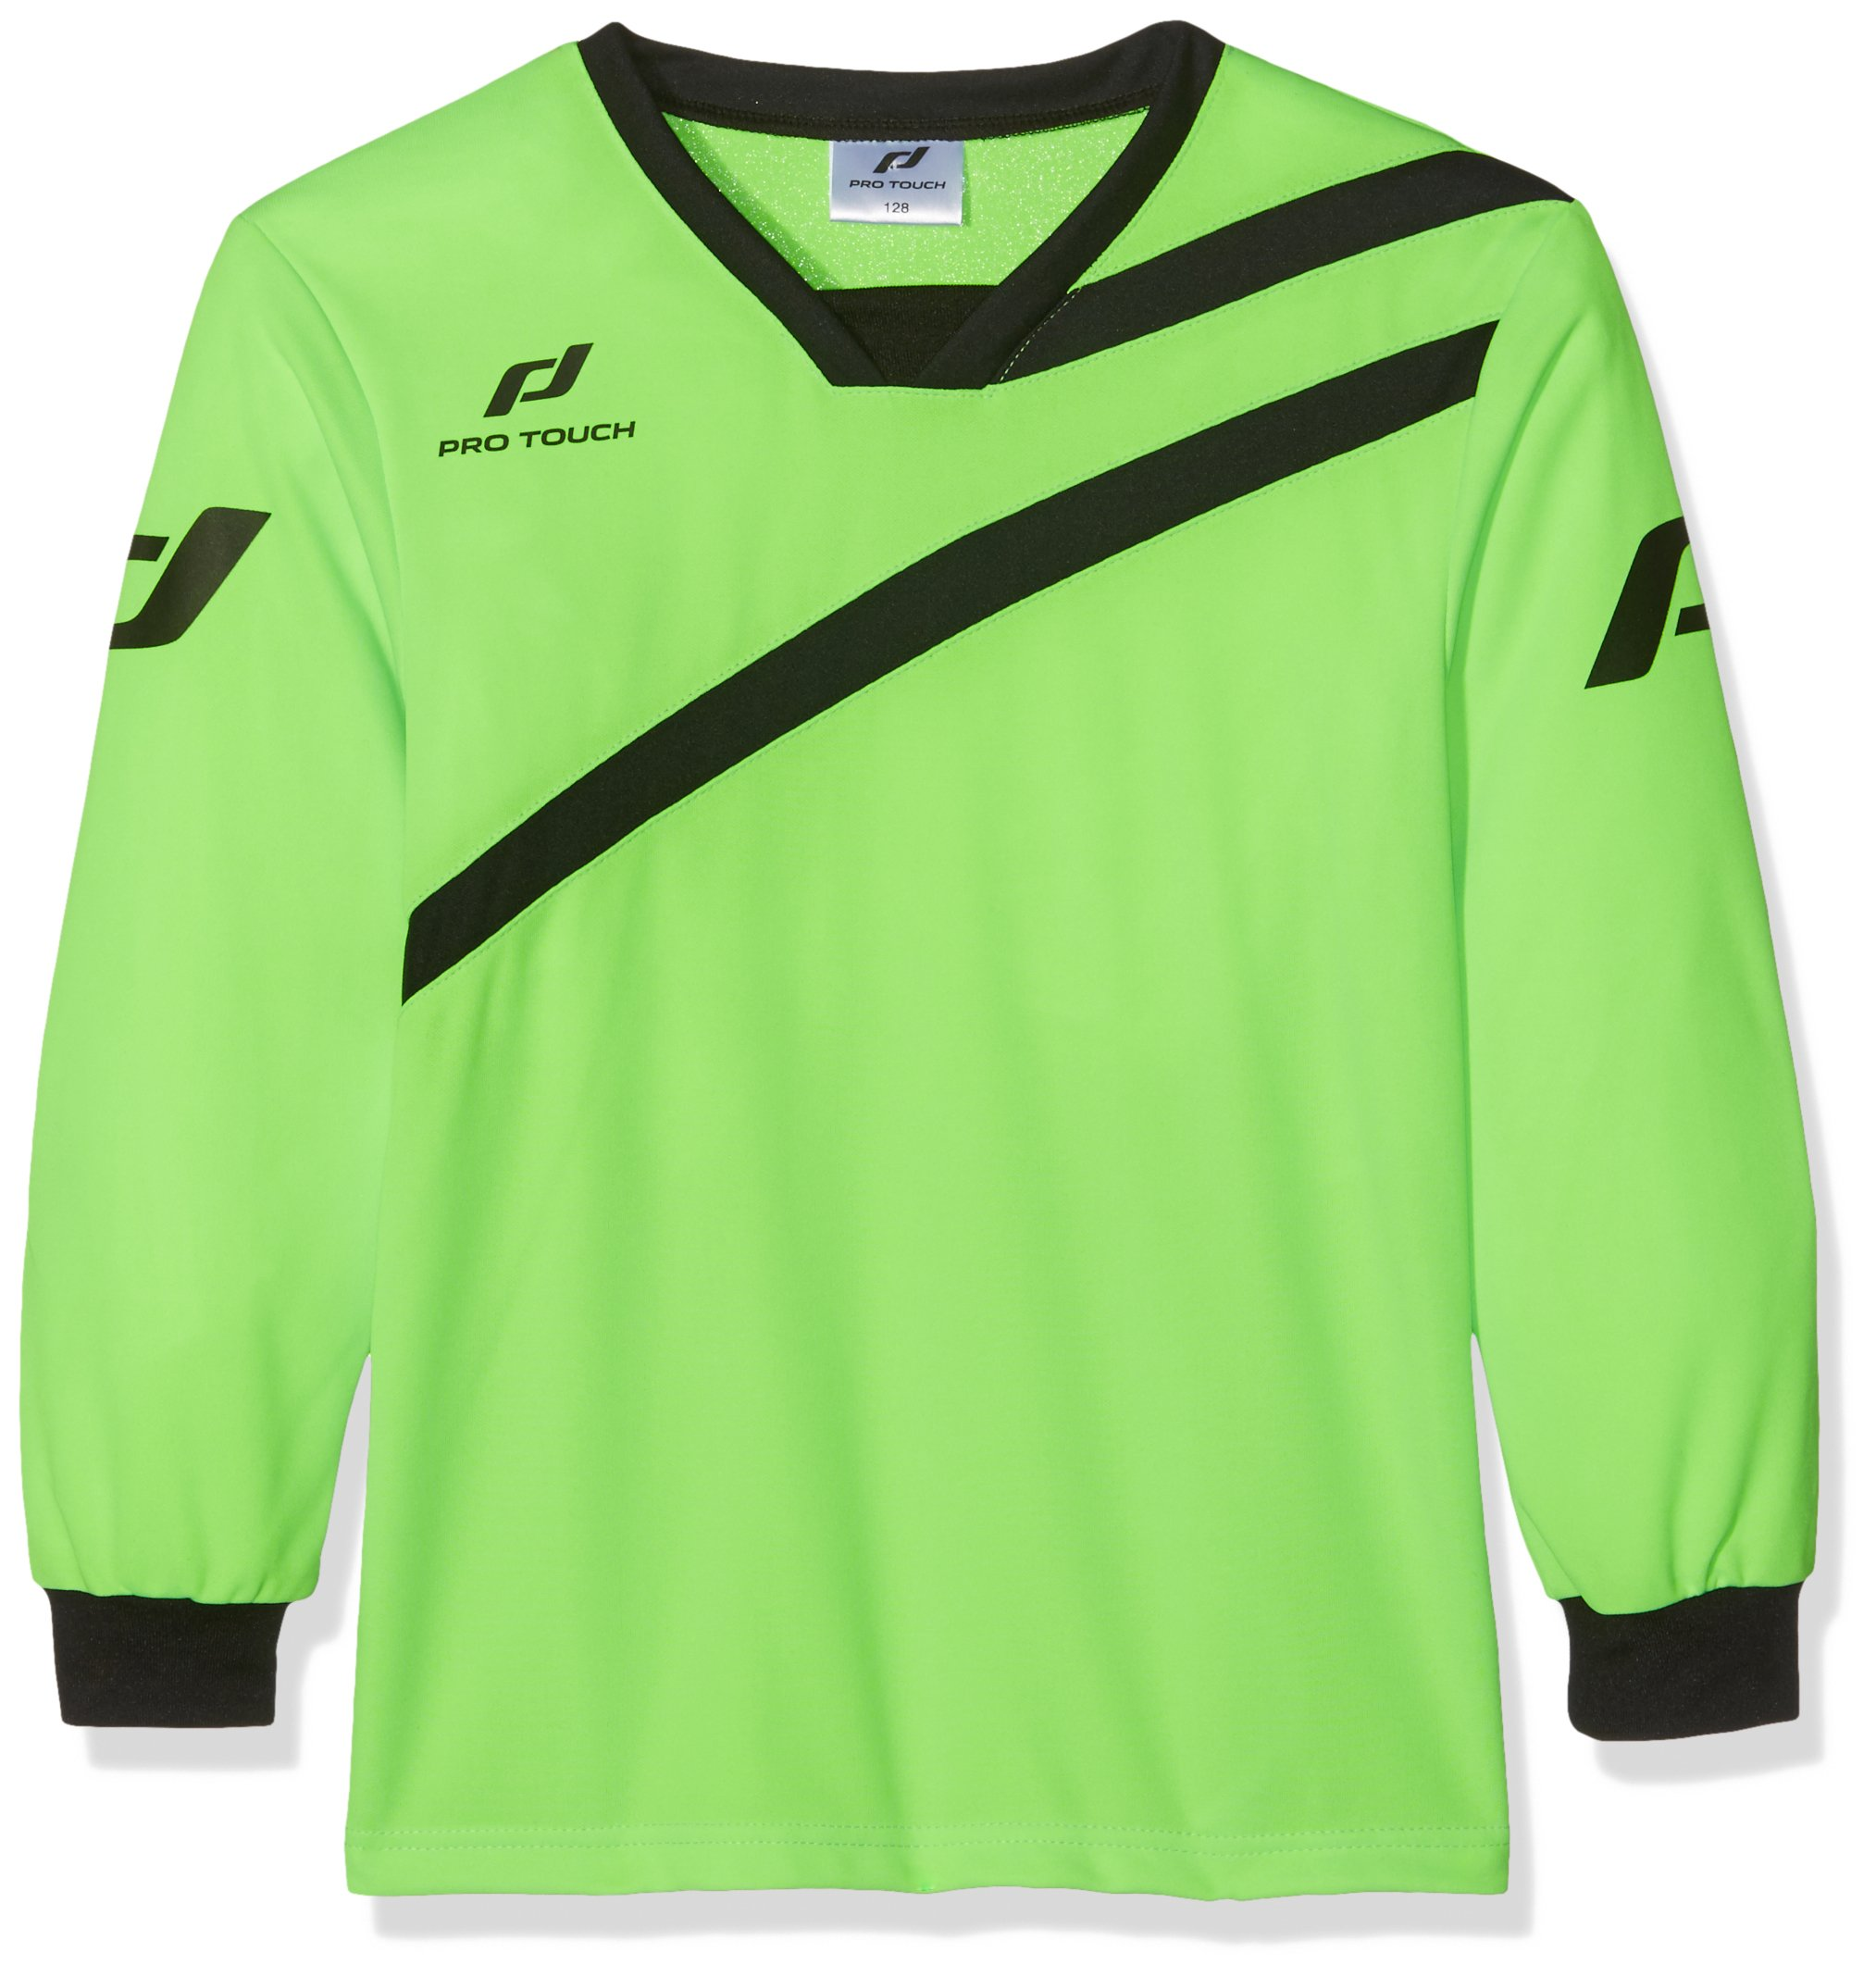 Pro Touch Kids Goalkeeper Barca Jersey Size 152 Green Gecko by Pro Touch